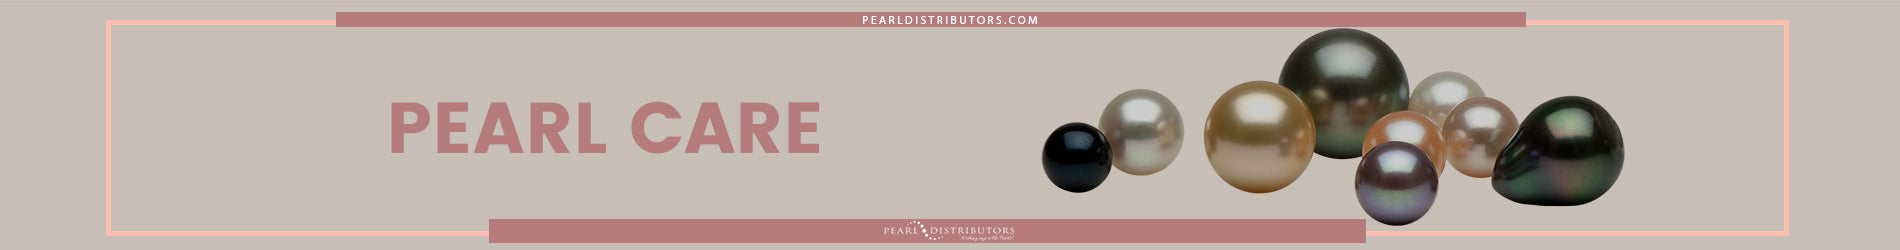 How to look after pearls